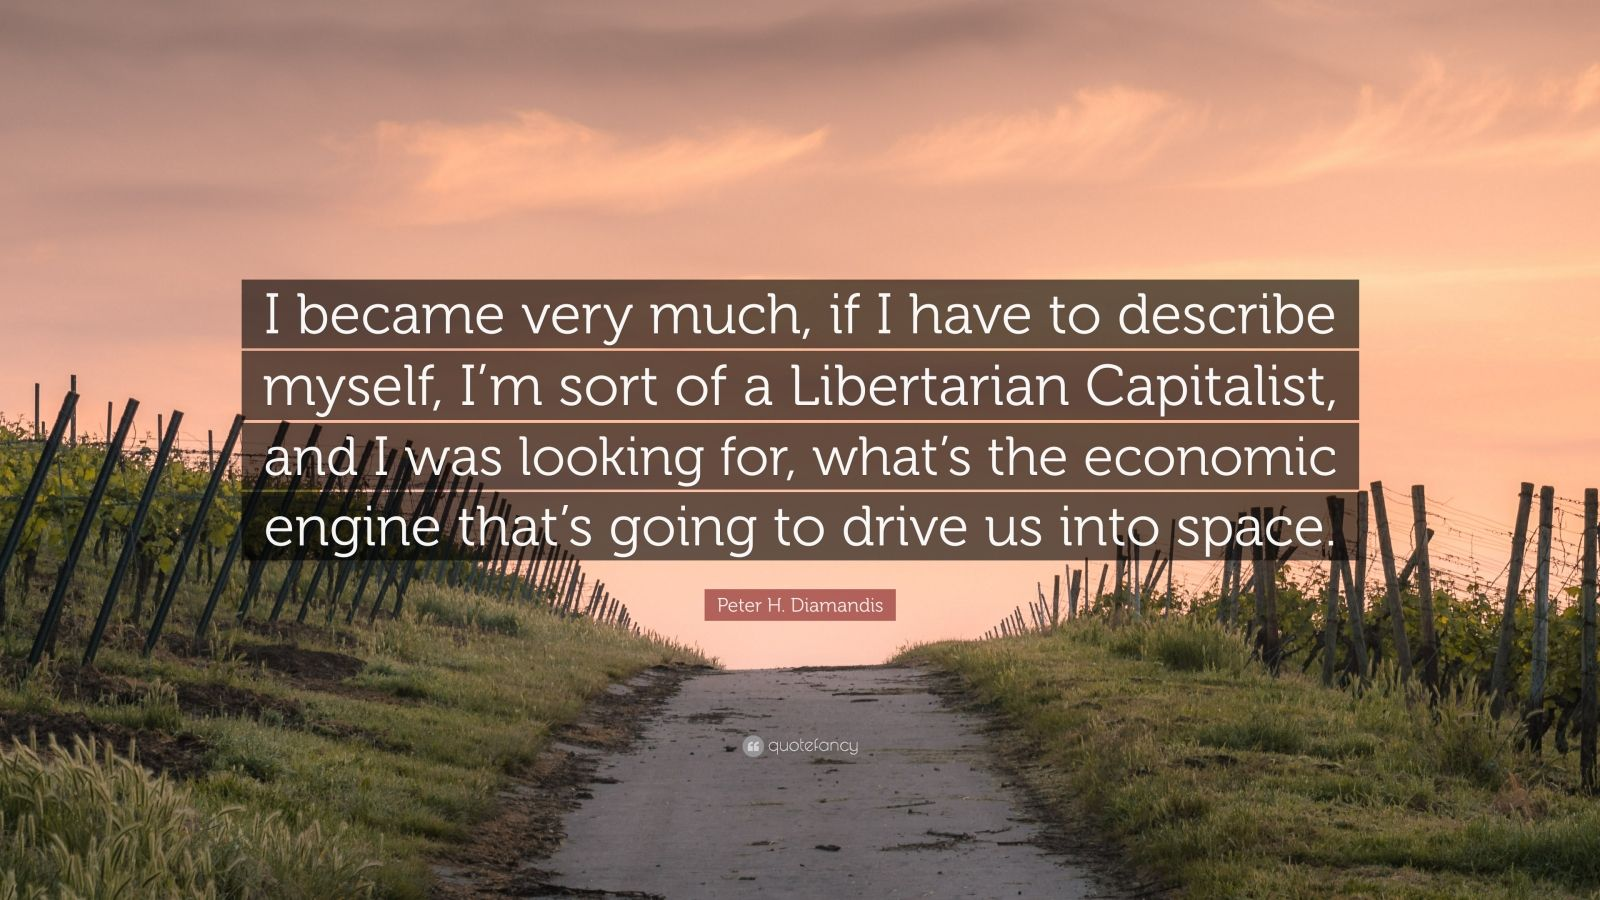 "Peter H. Diamandis Quote: ""I became very much, if I have to describe myself, I'm sort of a Libertarian Capitalist, and I was looking for, what's the economic engine that's going to drive us into space."""